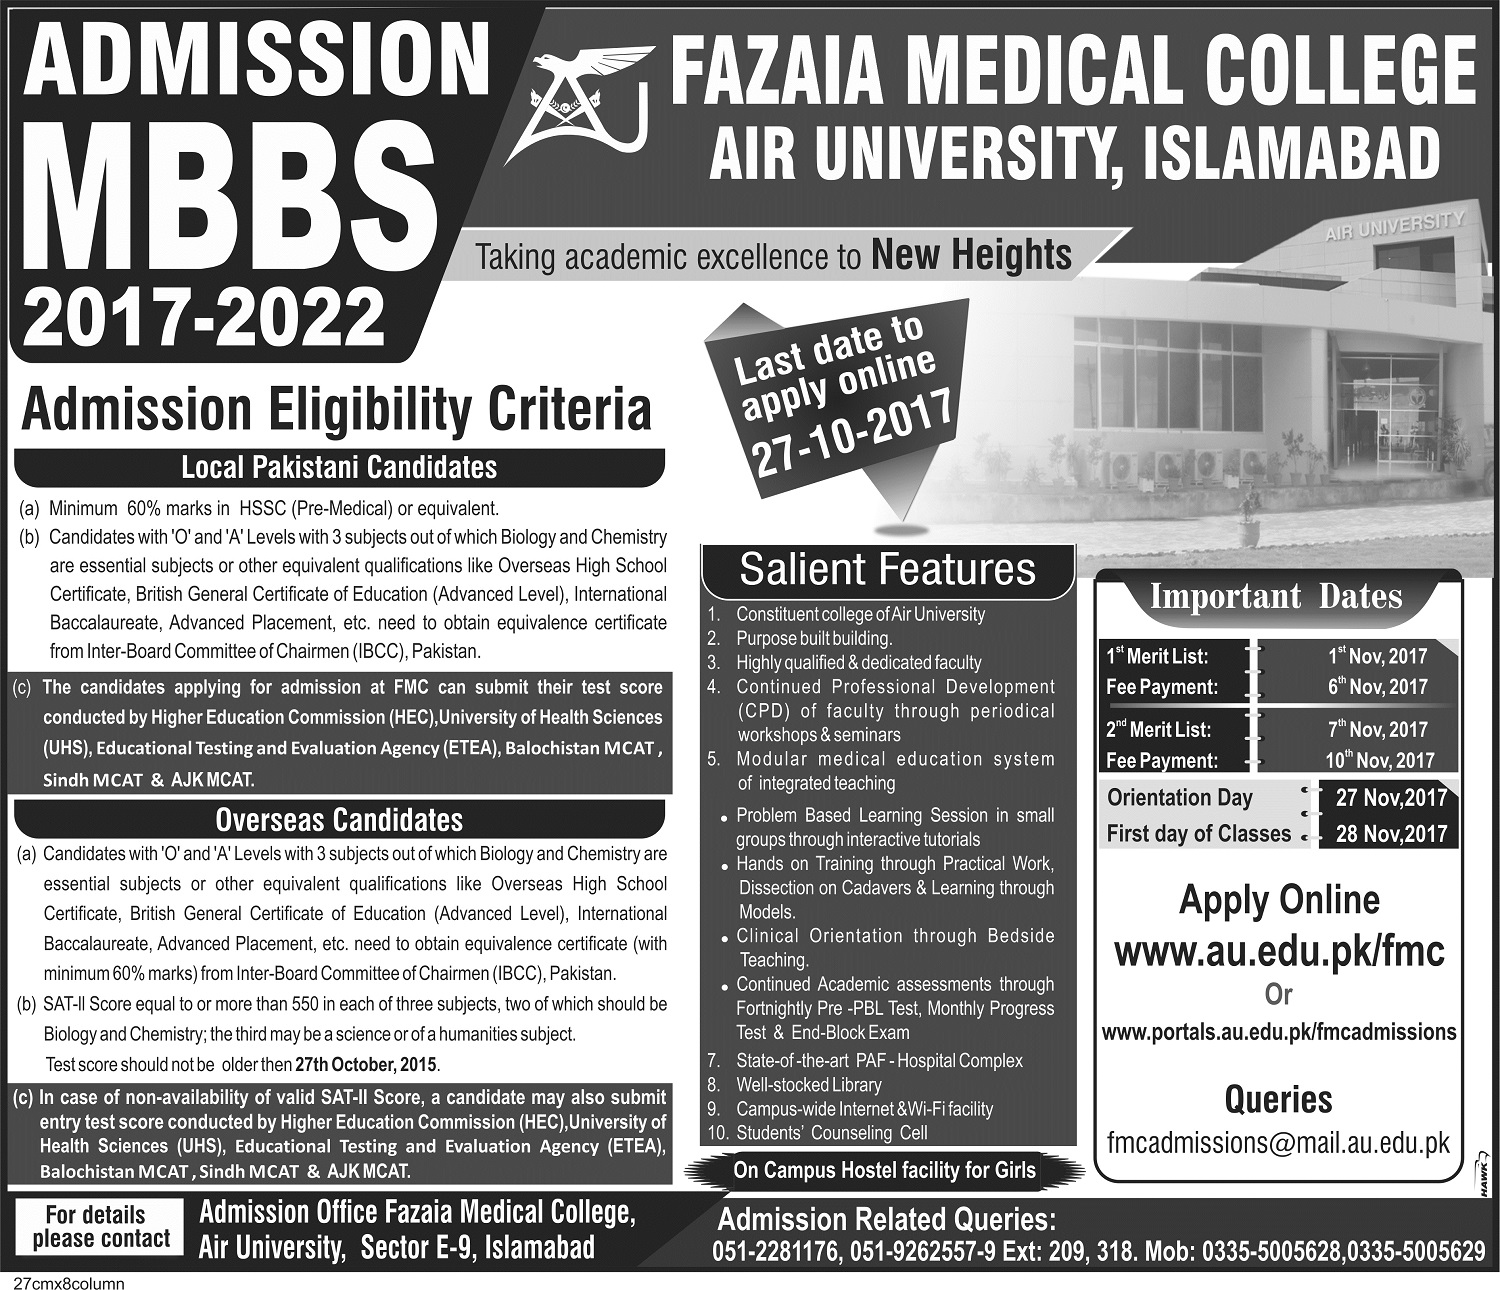 Air University Fazaia Medical College Islamabad Admission 2019